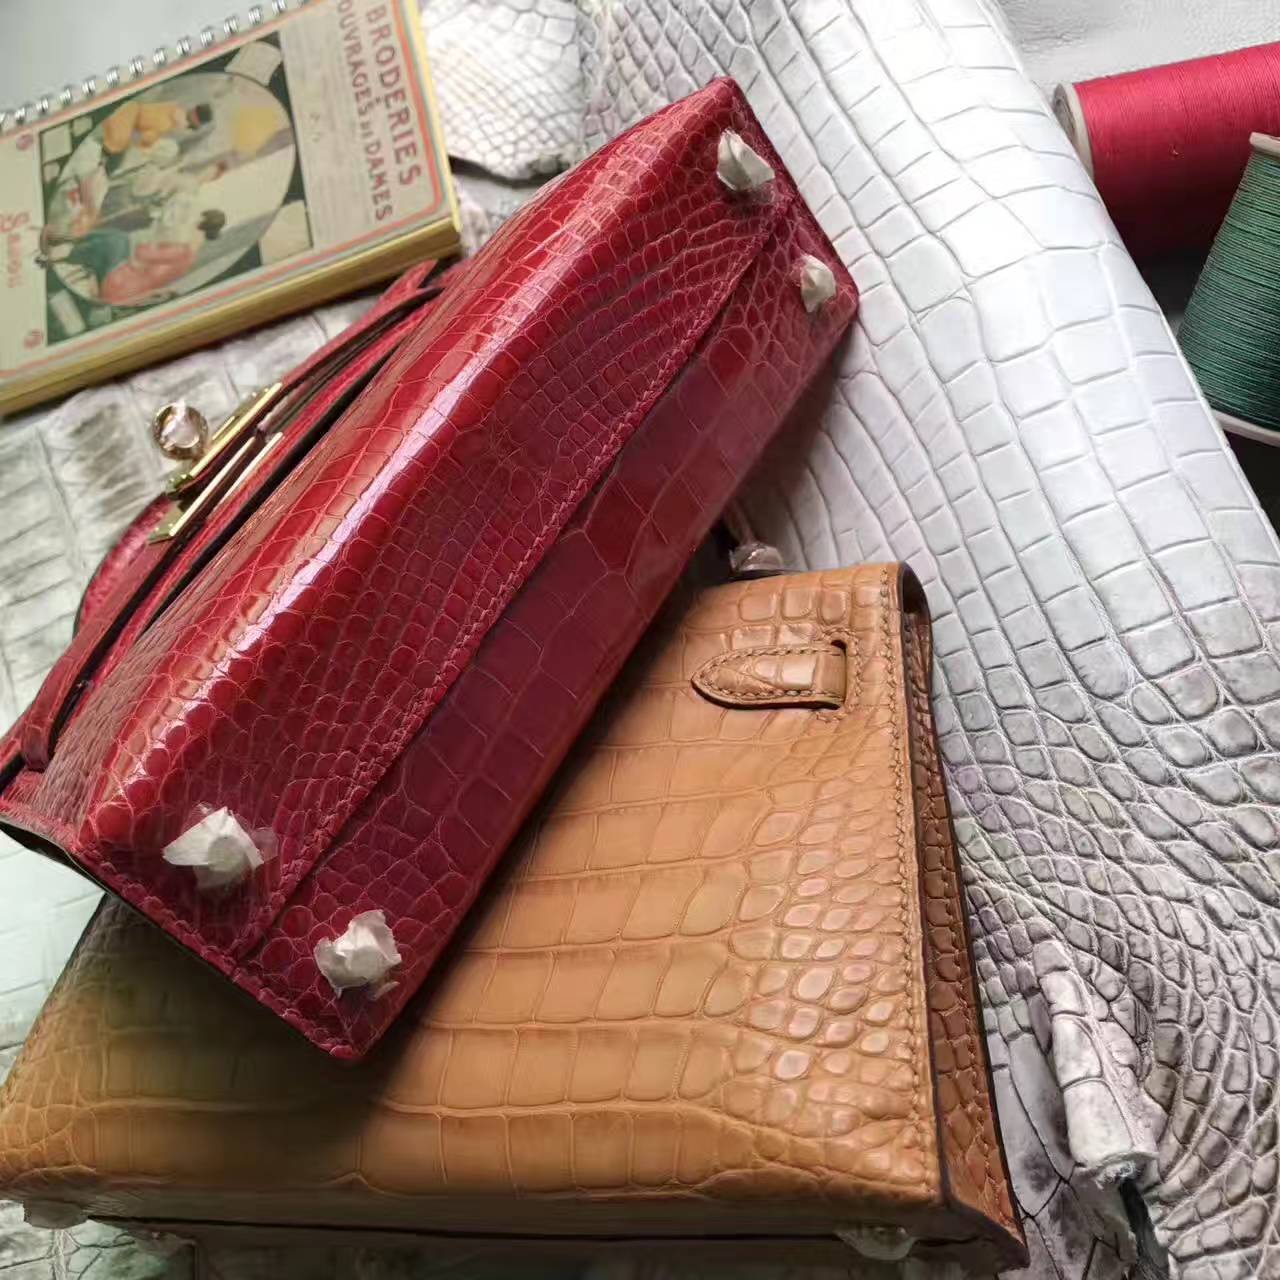 New Hermes A5 Bougainvillier Crocodile Shiny Leather Minikelly-2 Bag